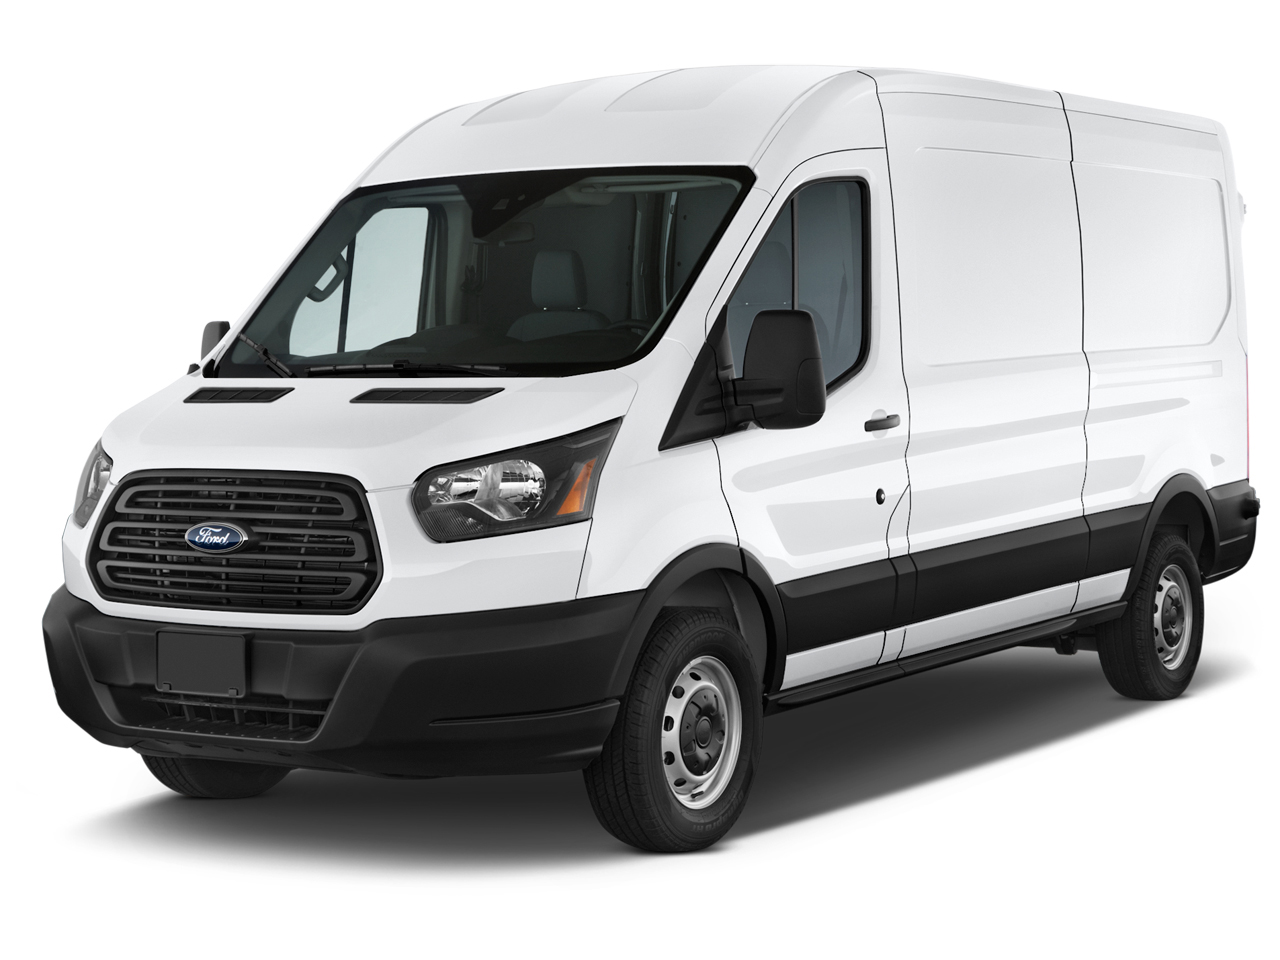 2018 ford transit van review ratings specs prices and photos the car connection. Black Bedroom Furniture Sets. Home Design Ideas